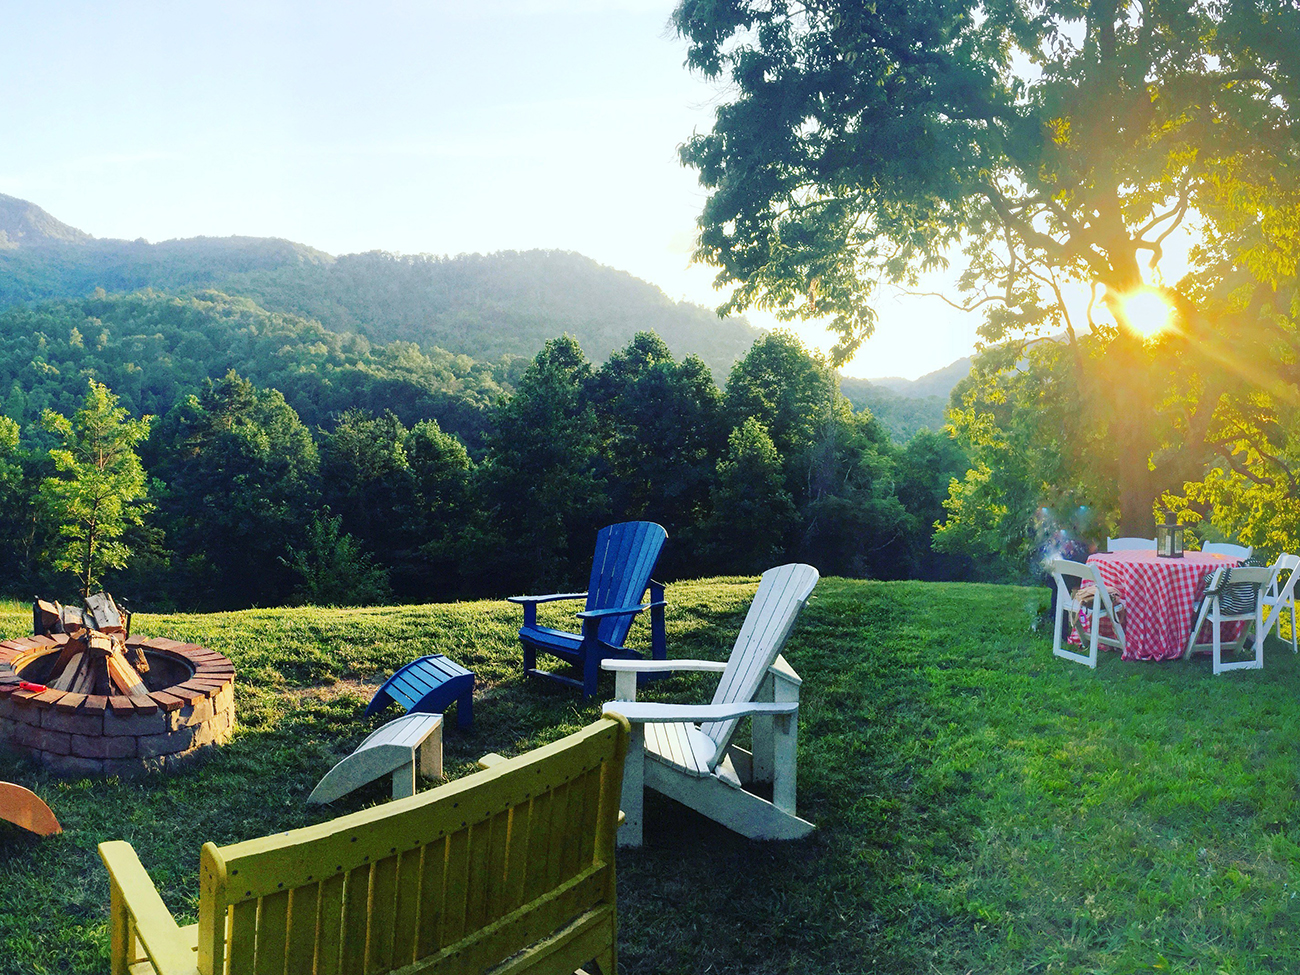 15 cute Asheville bed and breakfasts ranging from $149 to $349 per night